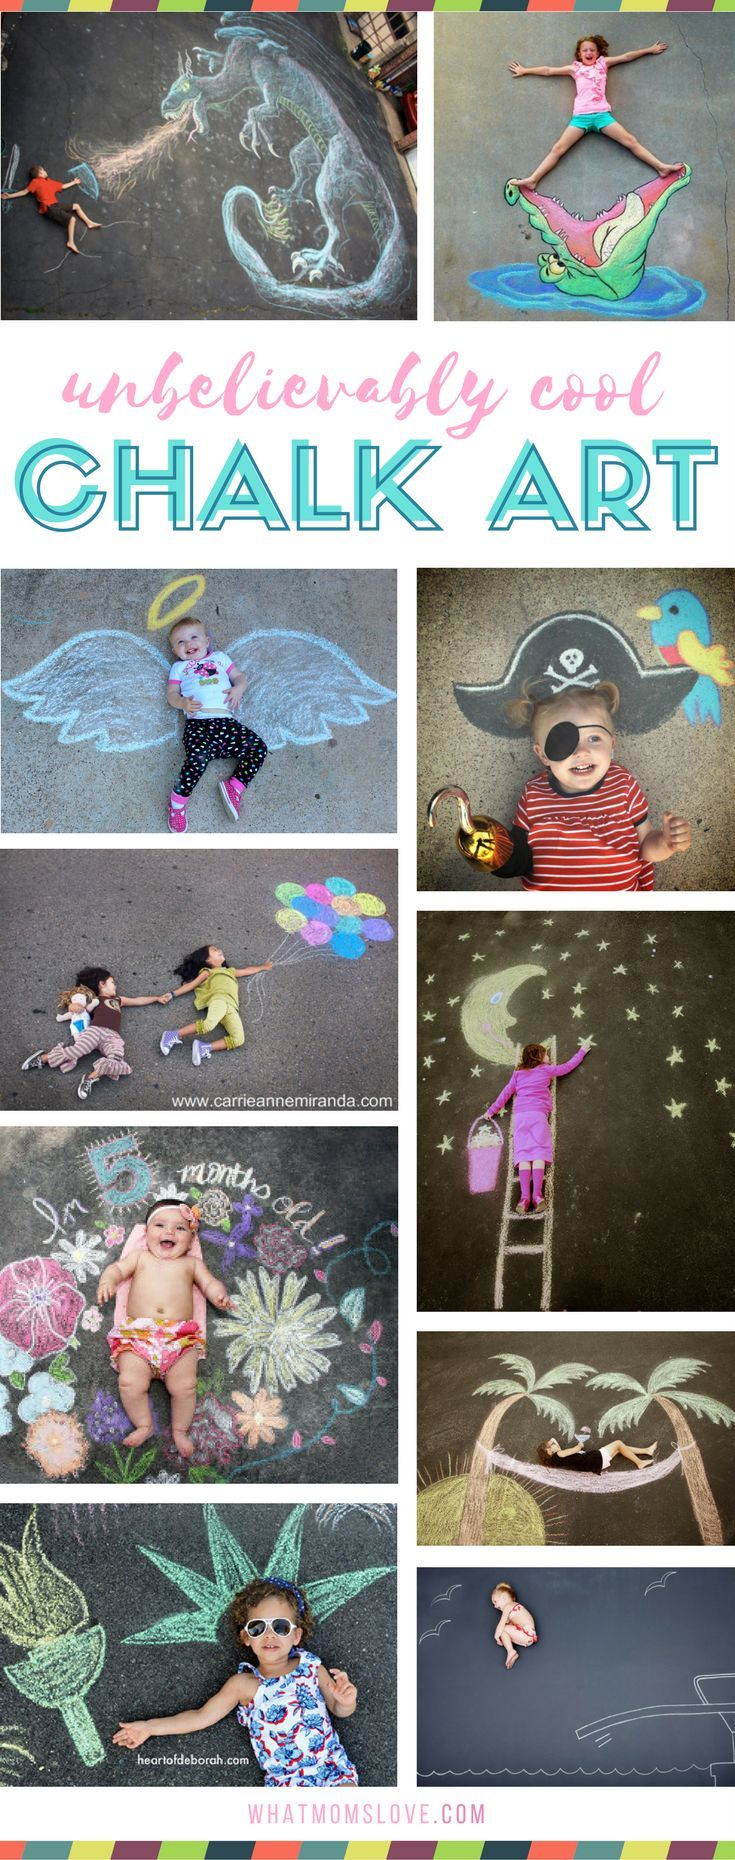 Creative Fun For All Ages With Easy Diy Wall Art Projects: 101 Genius Sidewalk Chalk Ideas To Crush Summertime